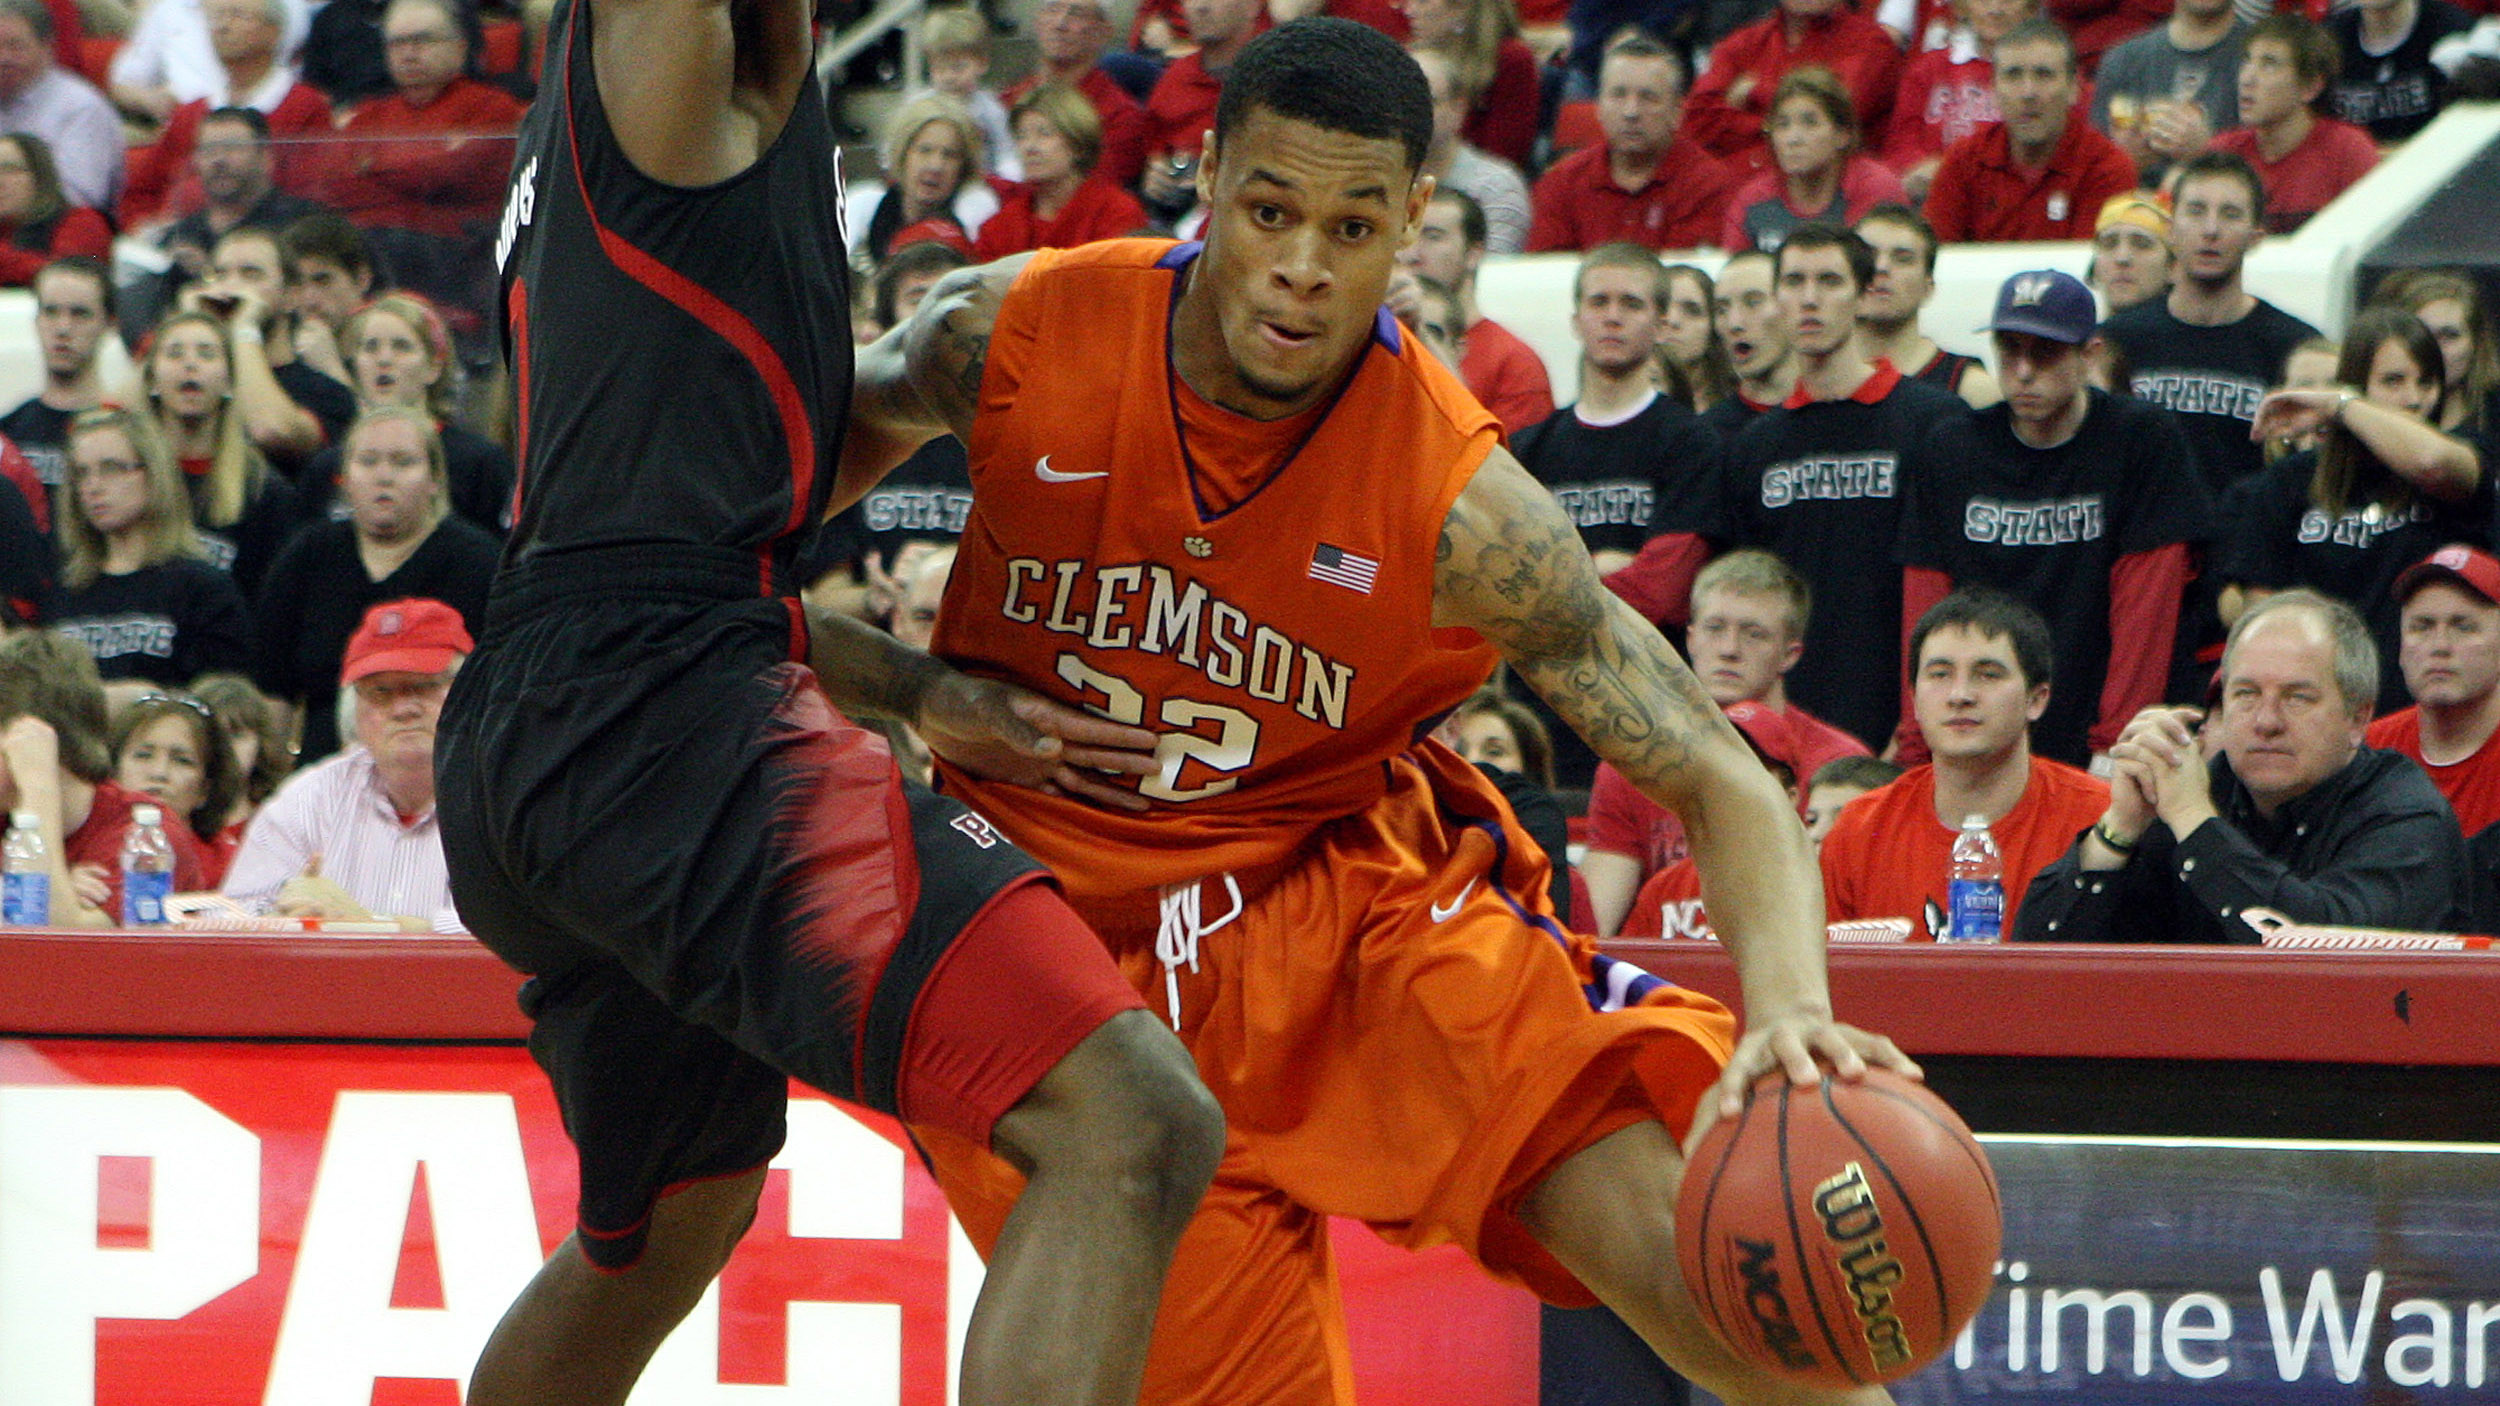 Special Youth Ticket Price Available for Clemson-Virginia Tech Basketball Game Sunday